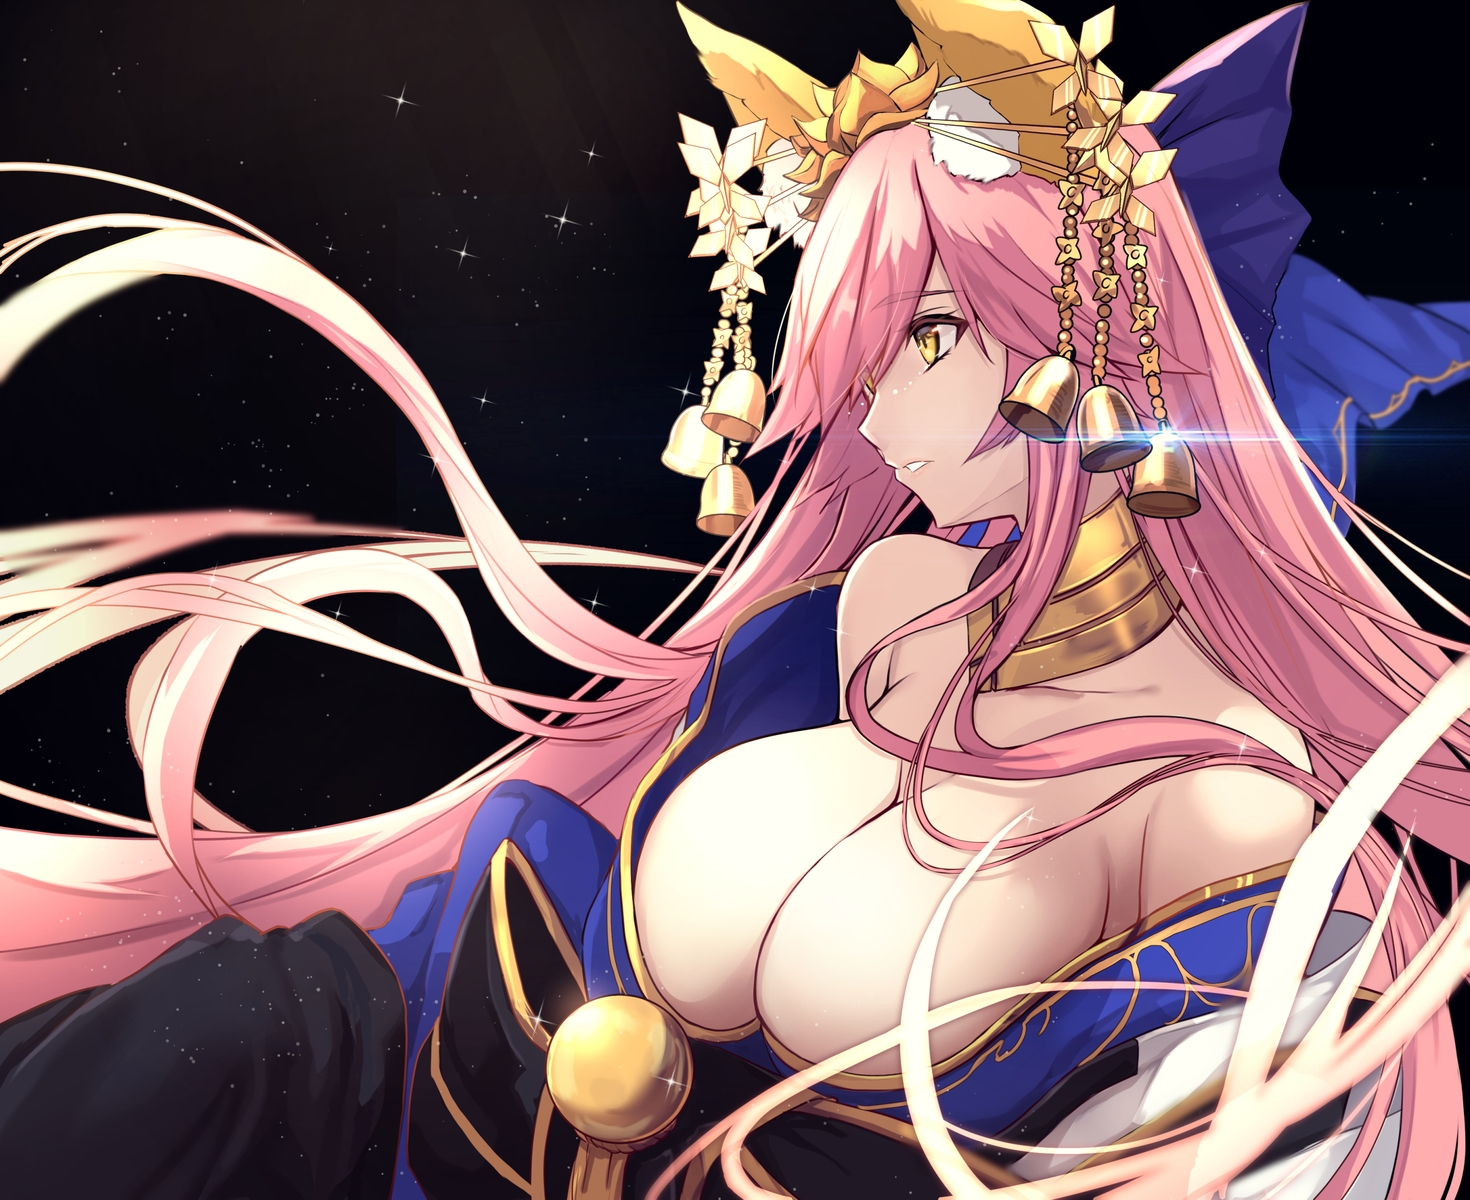 animal_ears bell breasts cleavage close fate/grand_order fate_(series) foxgirl japanese_clothes long_hair no_bra pink_hair tamamo_no_mae_(fate) untue yellow_eyes